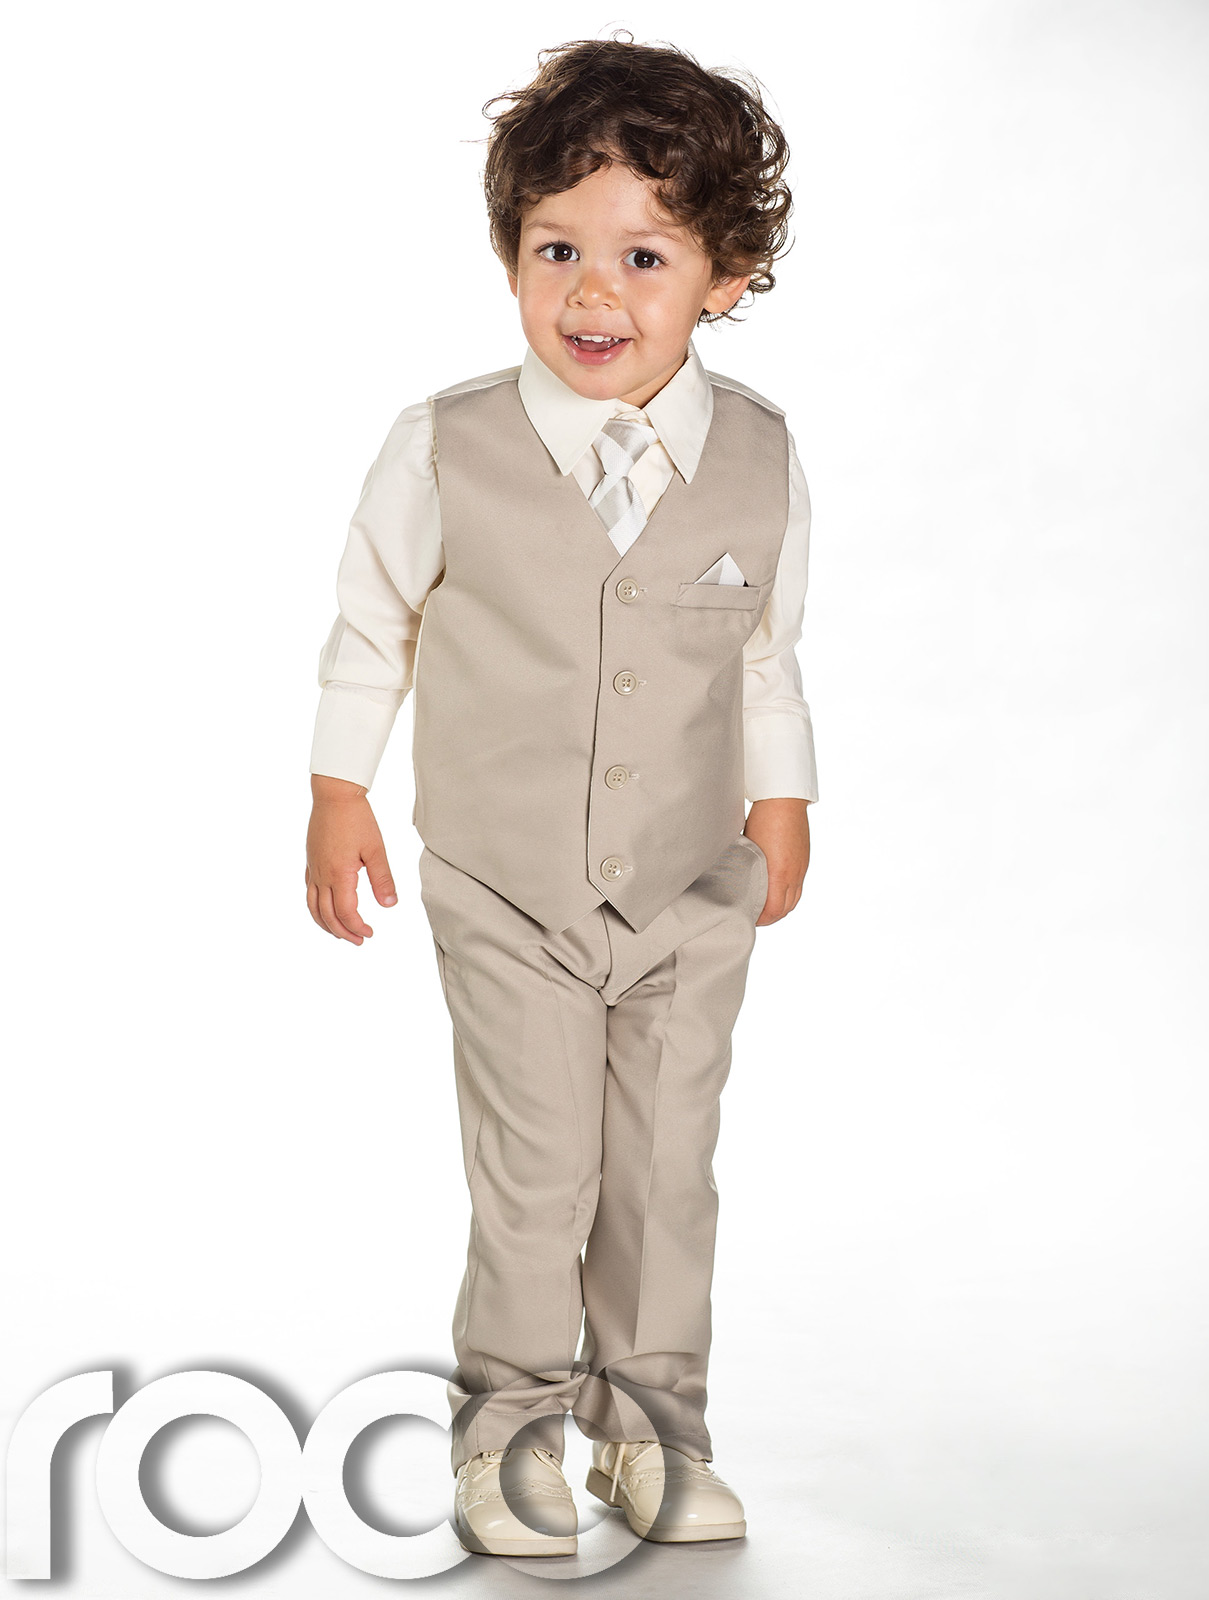 Buy Boys Wedding Suits from the No1 Boys suits website Occasion Wear for Kids. We stock a huge range of boys wedding suits with a wide range of colors from royal blue, blue, navy, grey, silver and black boys wedding suits.